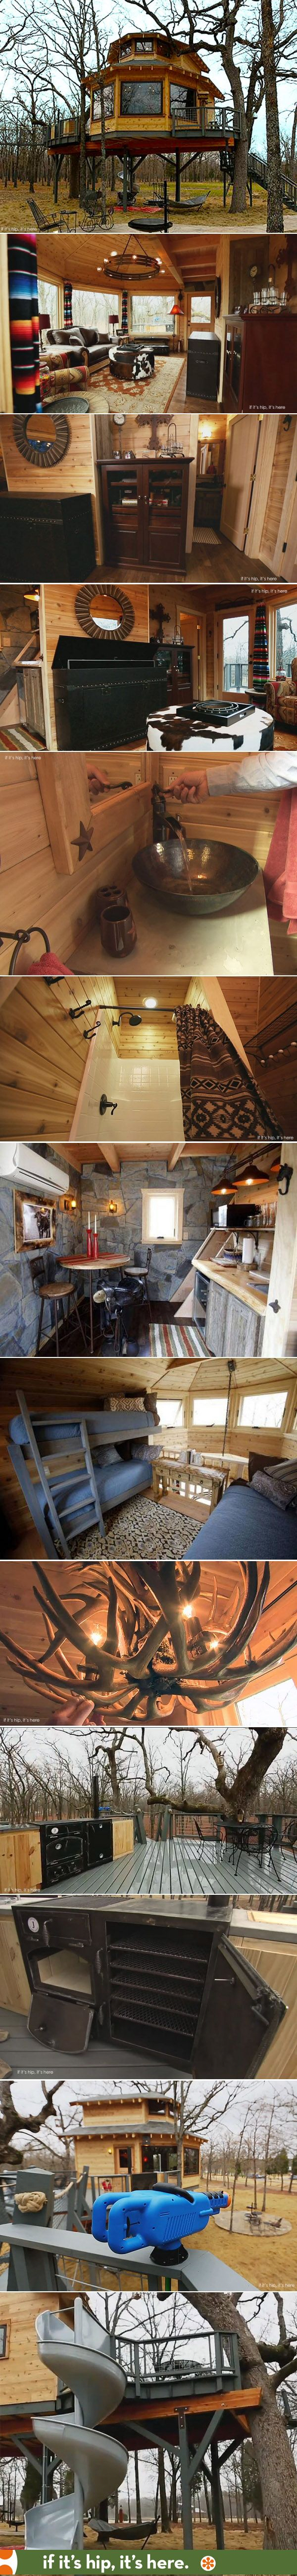 An unbelievable Mancave Treehouse!   1000 sq feet and has everything: water heated full bath, loft that sleeps five, remote controlled flat screen tv hidden in a leather chest, a humidor with watch winders, a smoker/oven/grill/, wine refrigerator and a corkscrew slide to get out. Must see all 30 photos at the link.